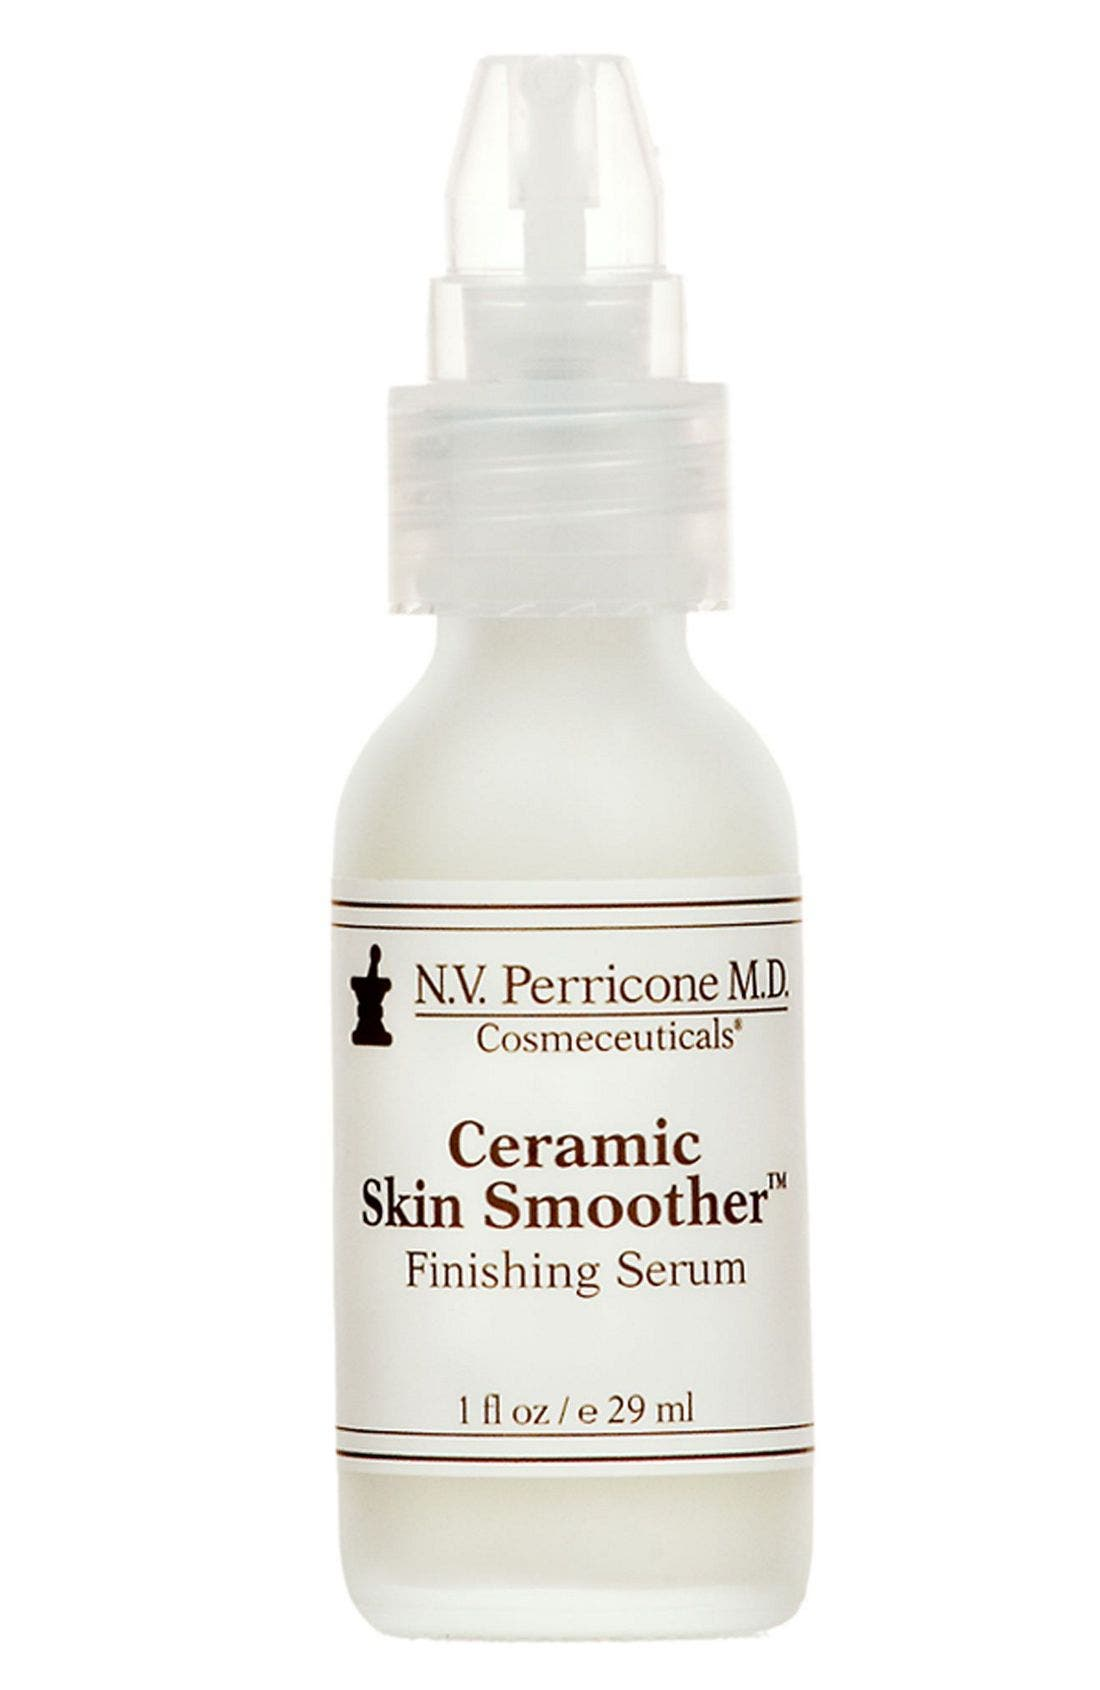 PERRICONE MD,                             N.V. Perricone, M.D. Ceramic Skin Smoother<sup>™</sup> Finishing Serum,                             Main thumbnail 1, color,                             000